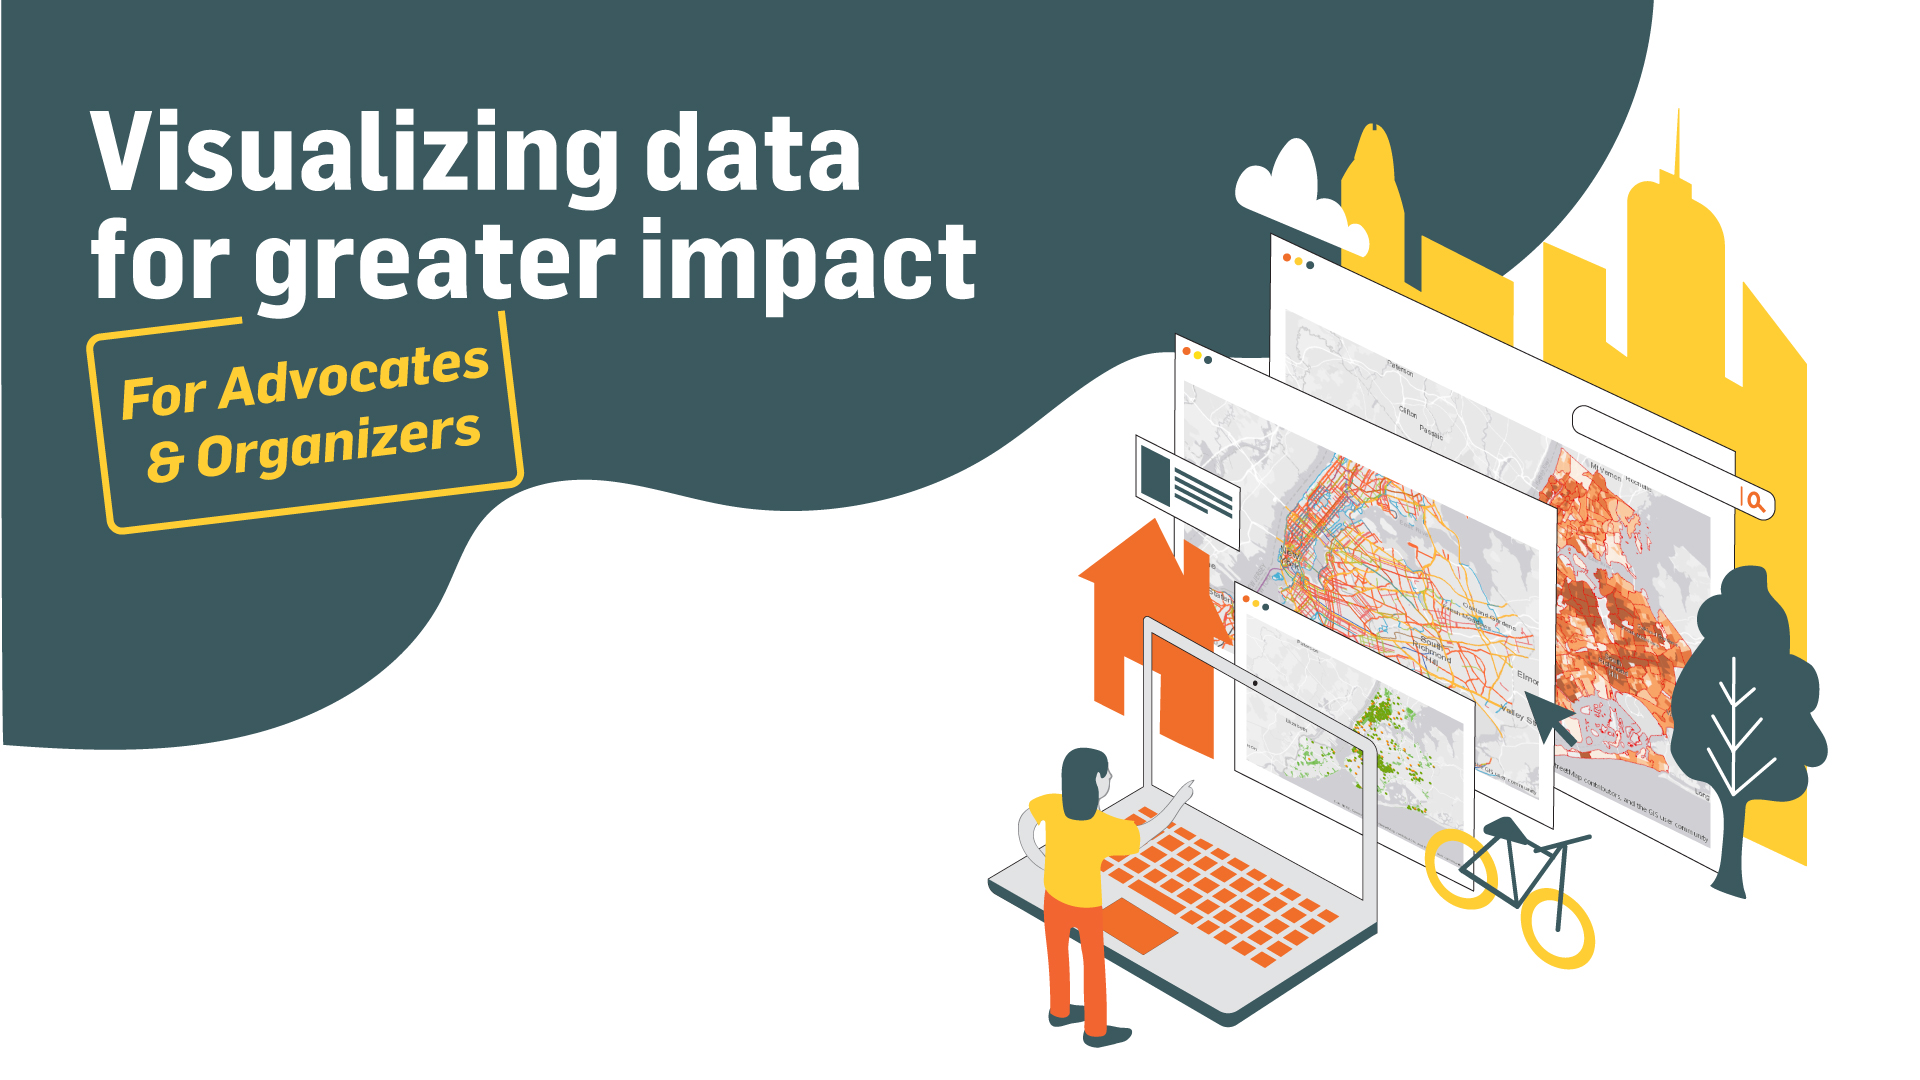 Visualizing Data for Greater Impact: For Advocates & Organizers